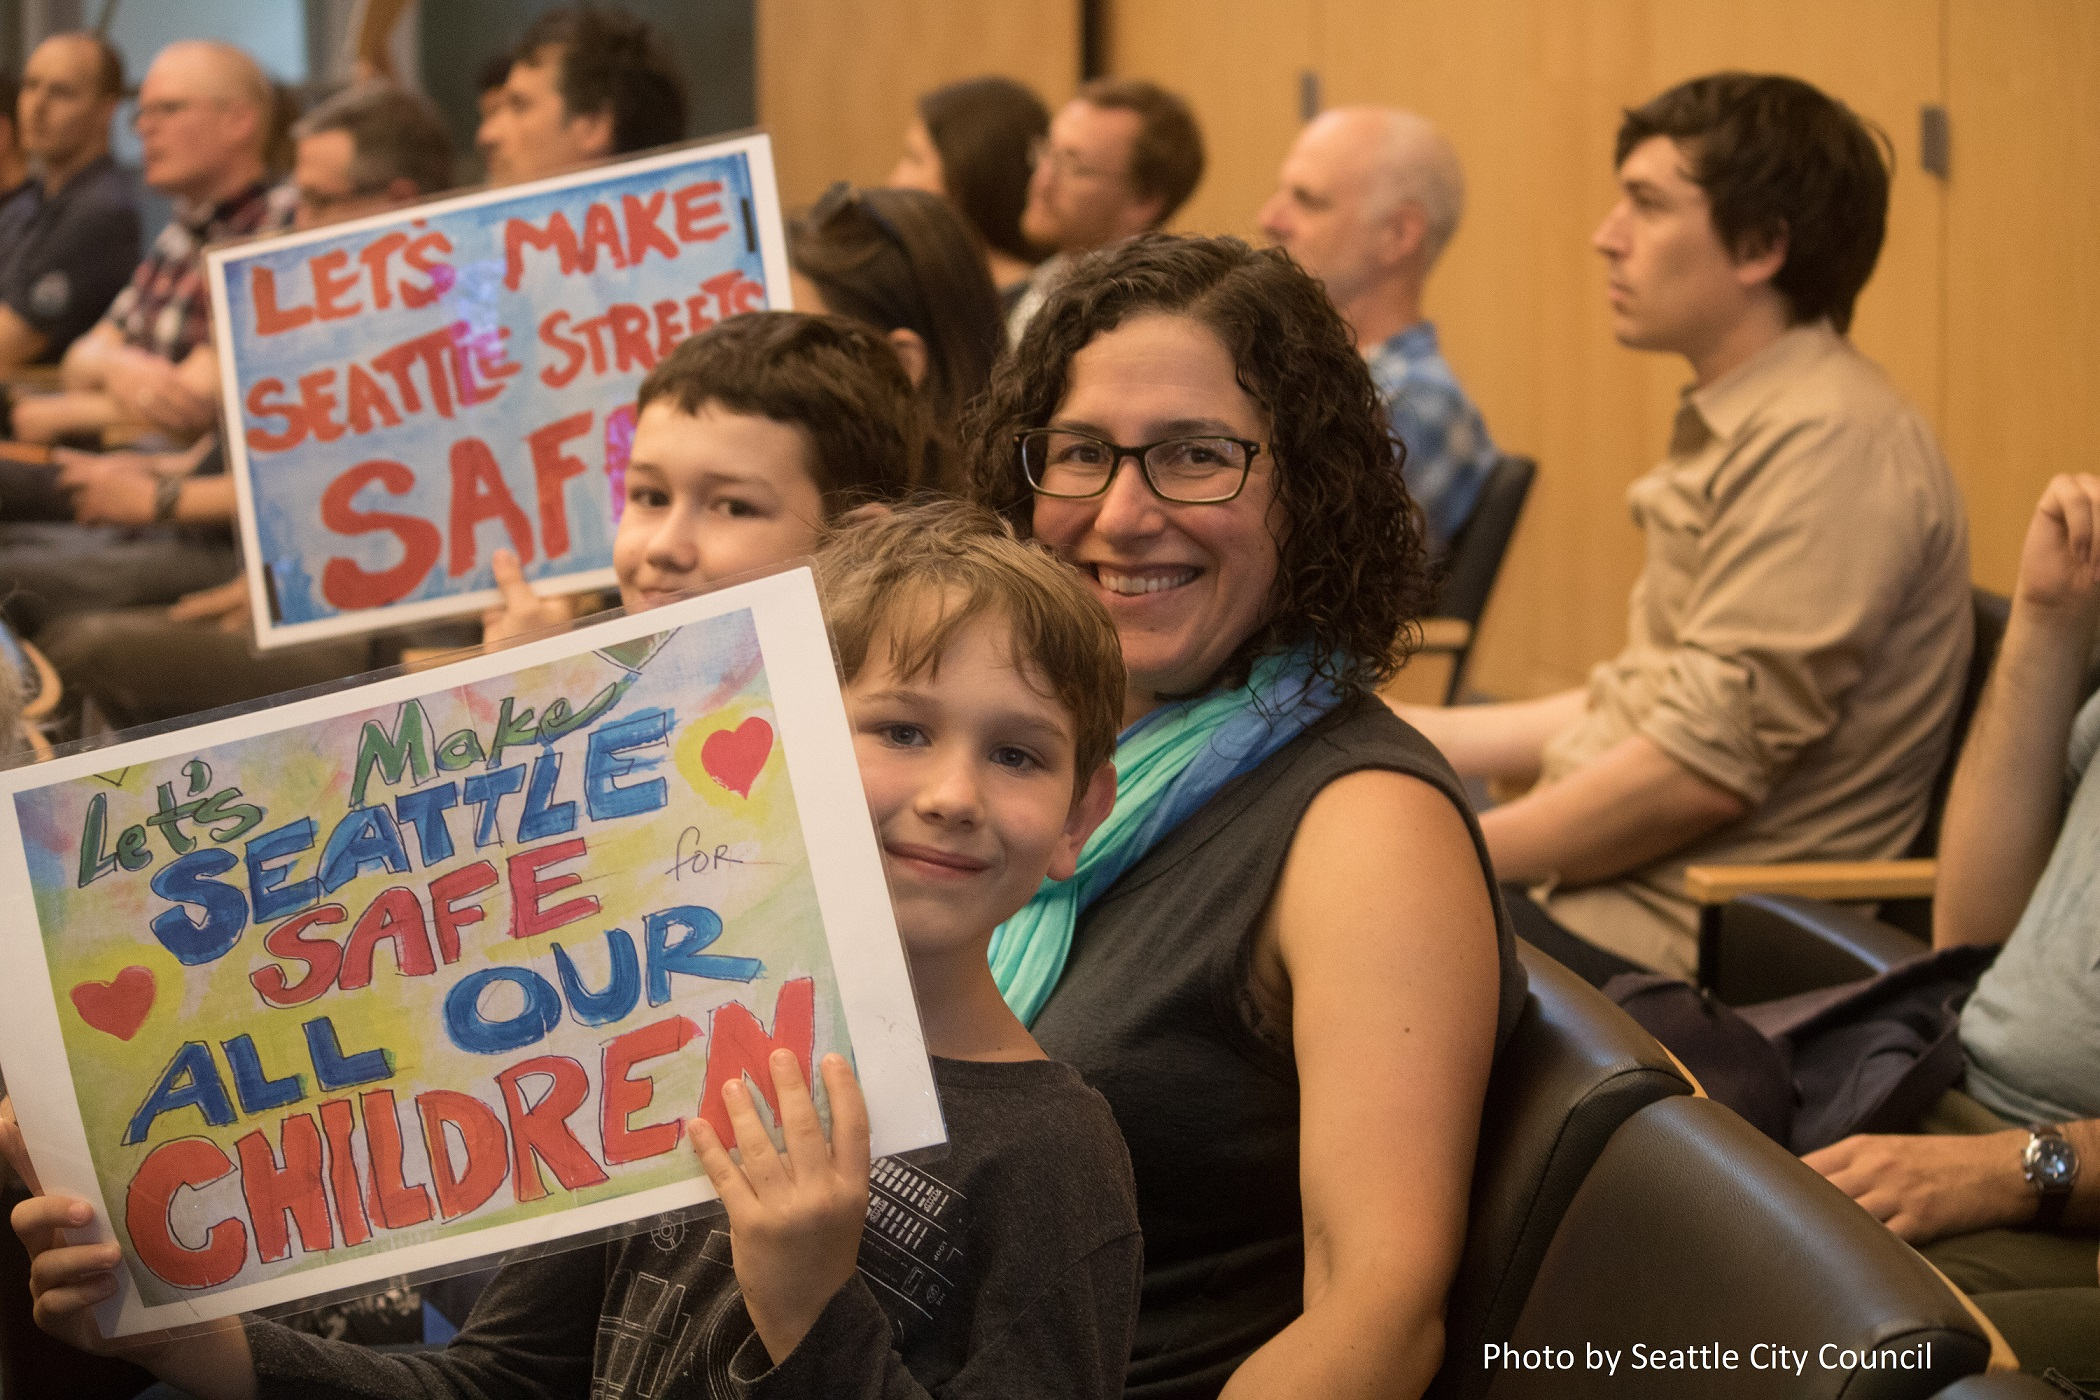 A woman and her two children sit in the City Council chambers smiling and holding handmade signs in support of safe streets.